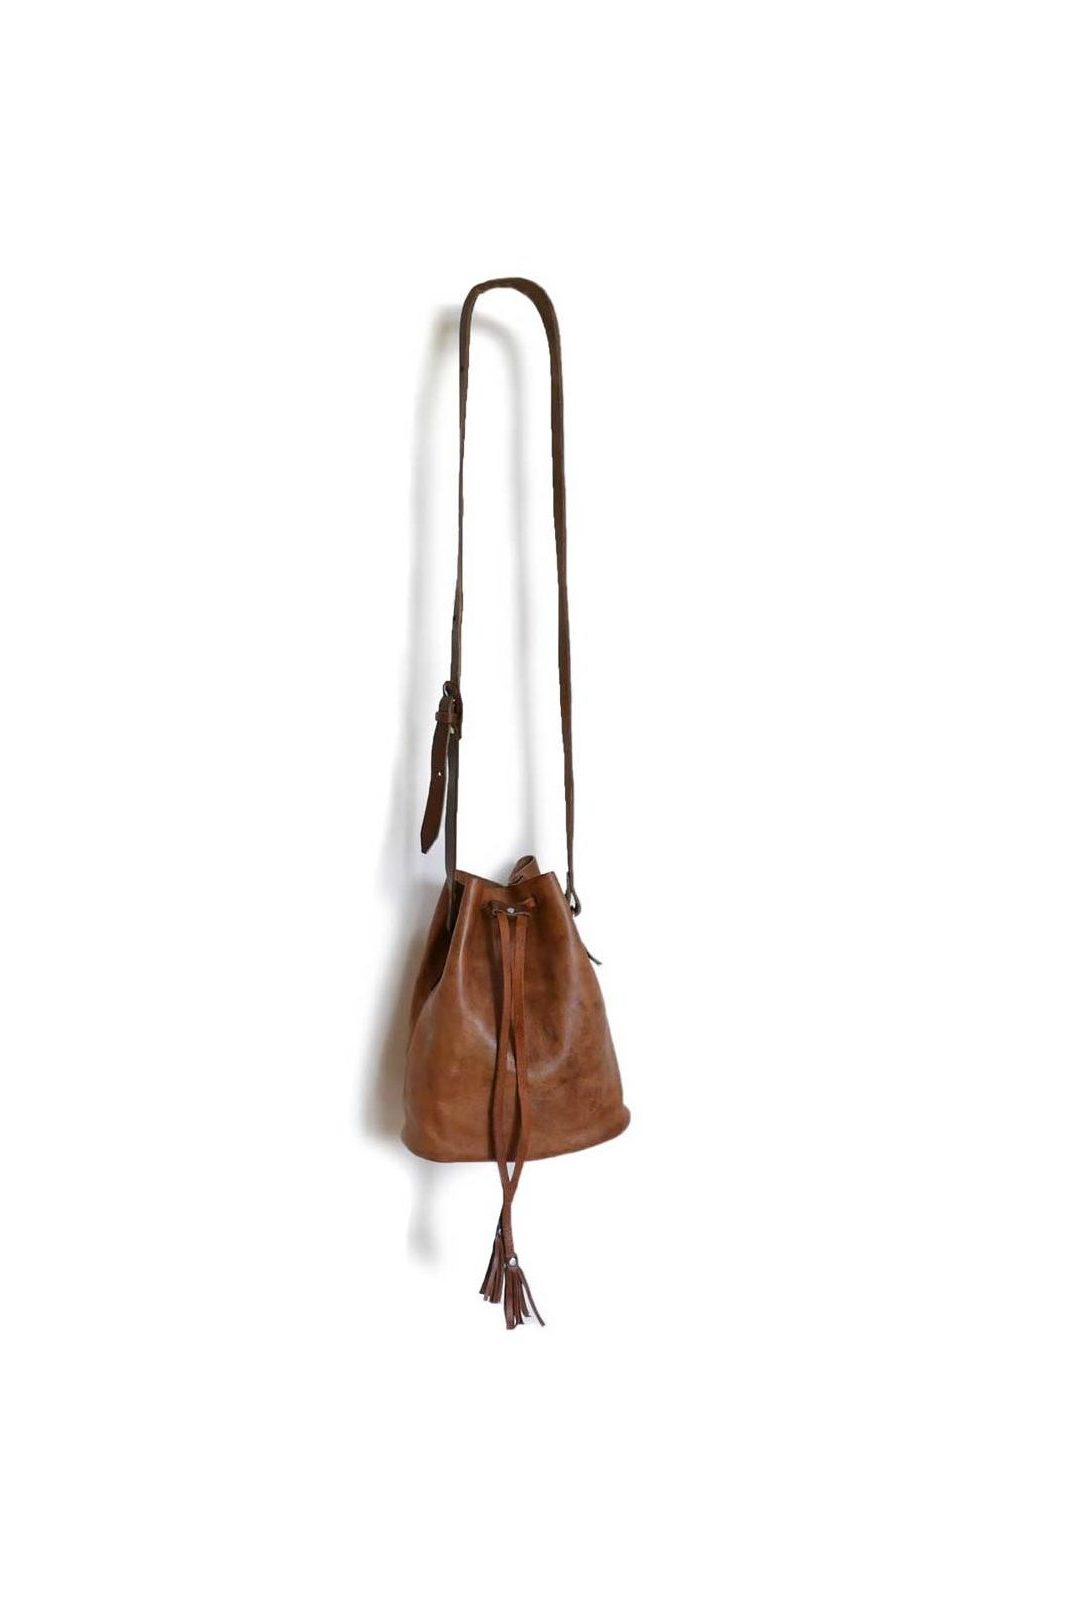 Mateo Goat Leather Bucket Bag - www.nidocollective.com #leatherbag #goatleatherbag #bucketbag #mexicanbag